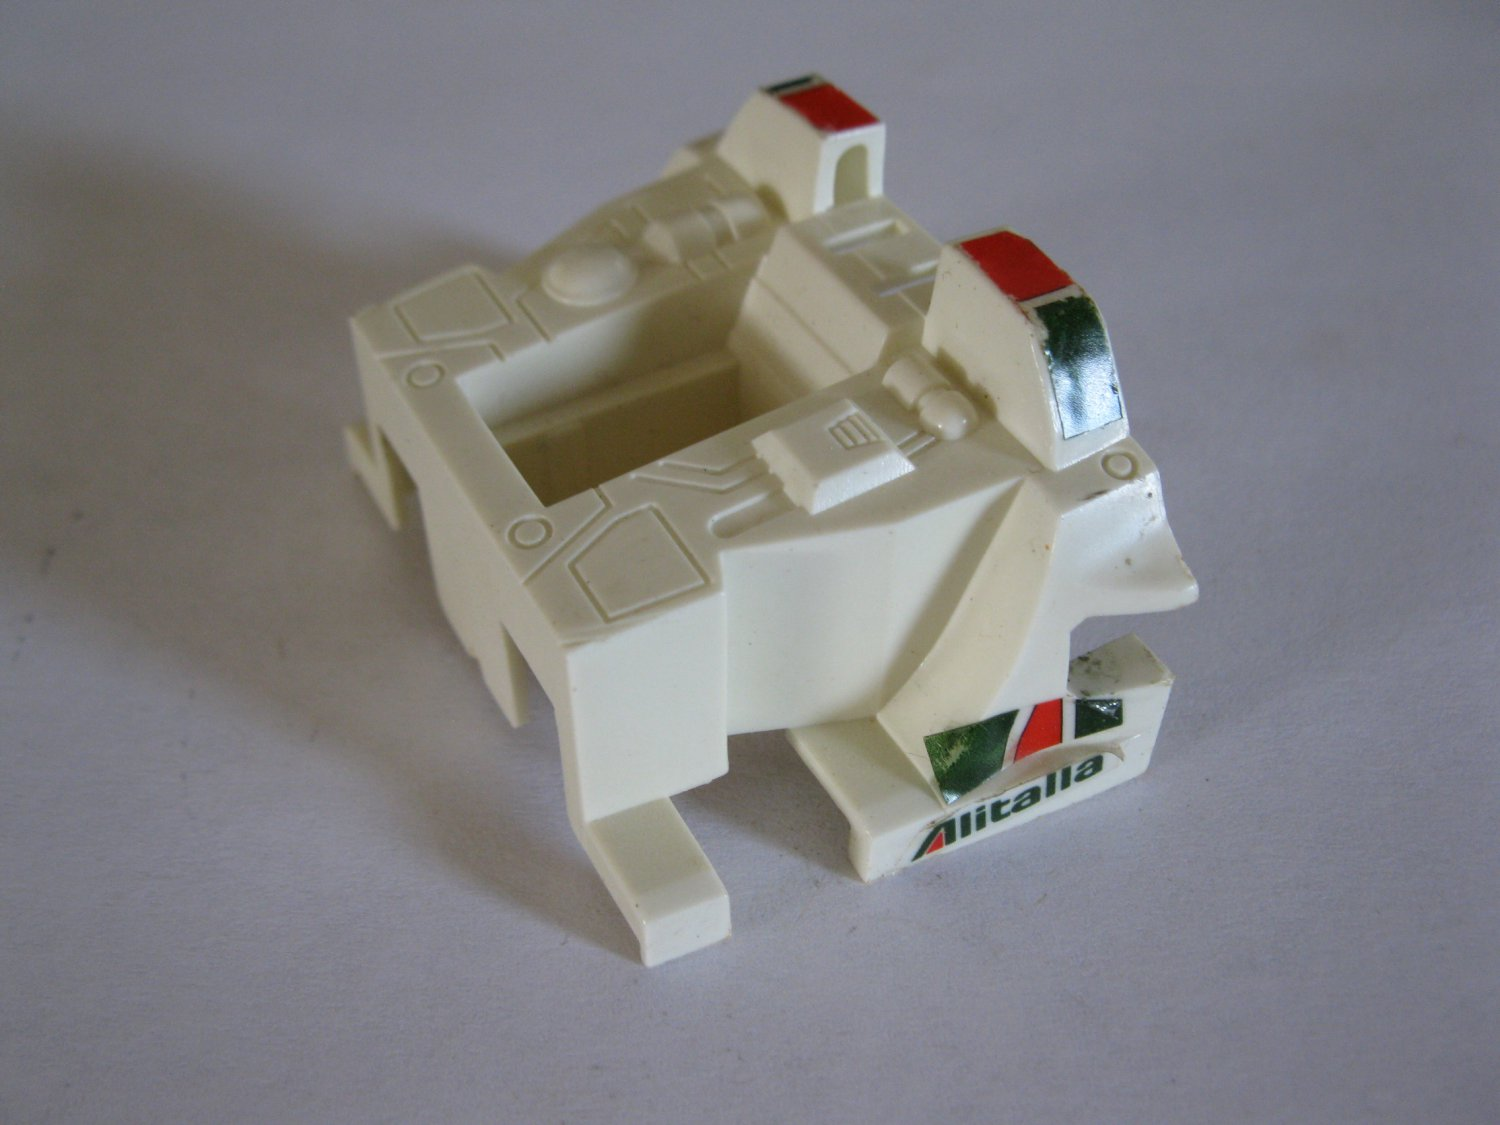 G1 Transformers Action figure part: 1982 Wheeljack - Rear Engine Compartment